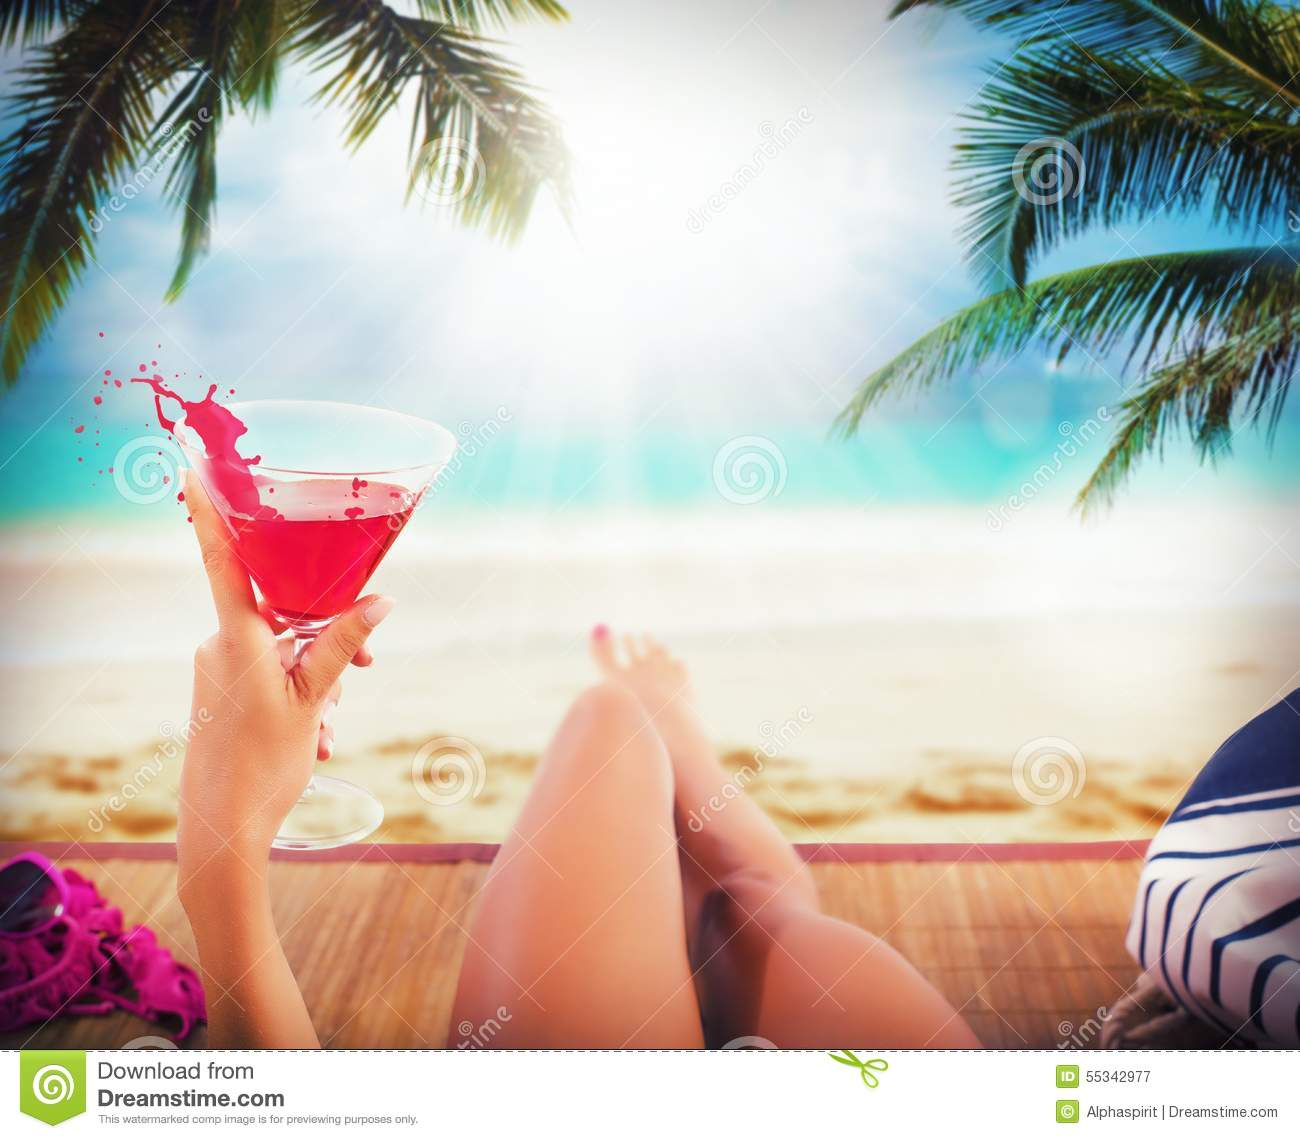 Woman With Beautiful Body In Bikini At Beach Stock Image: Beach And Cocktail Stock Image. Image Of Glass, Beverage